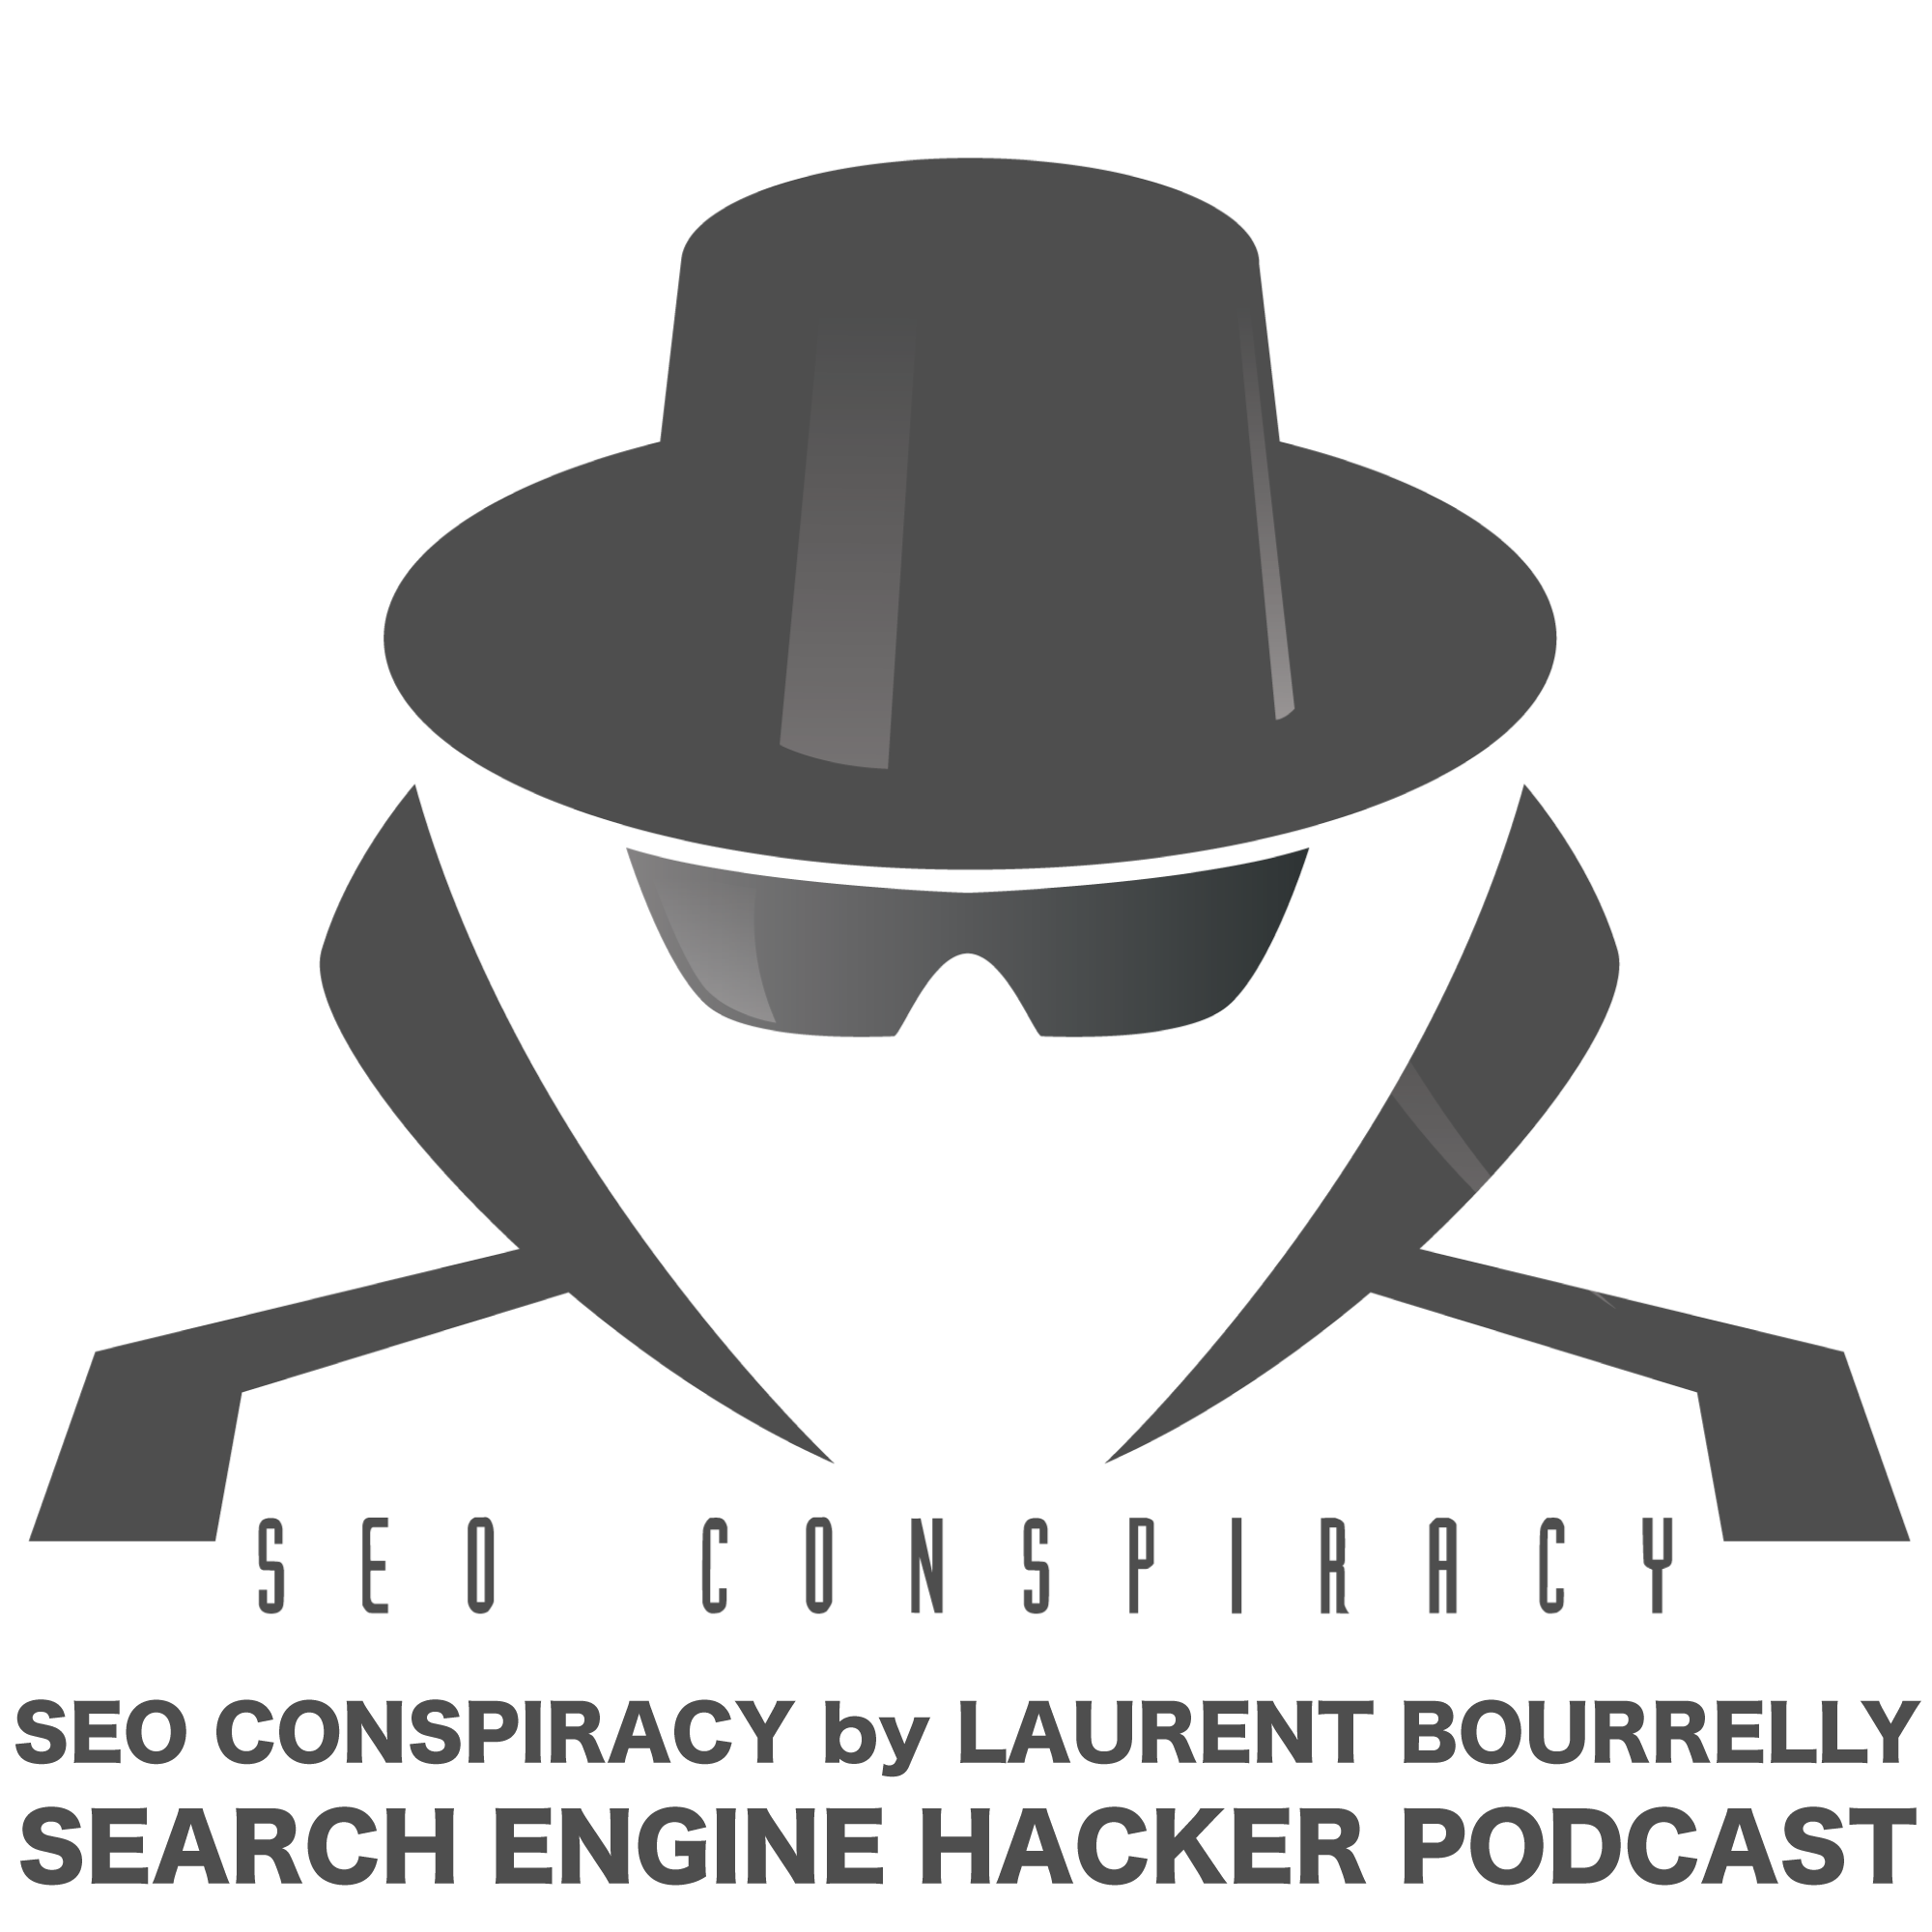 Ìs Google protection my website against Negative SEO?